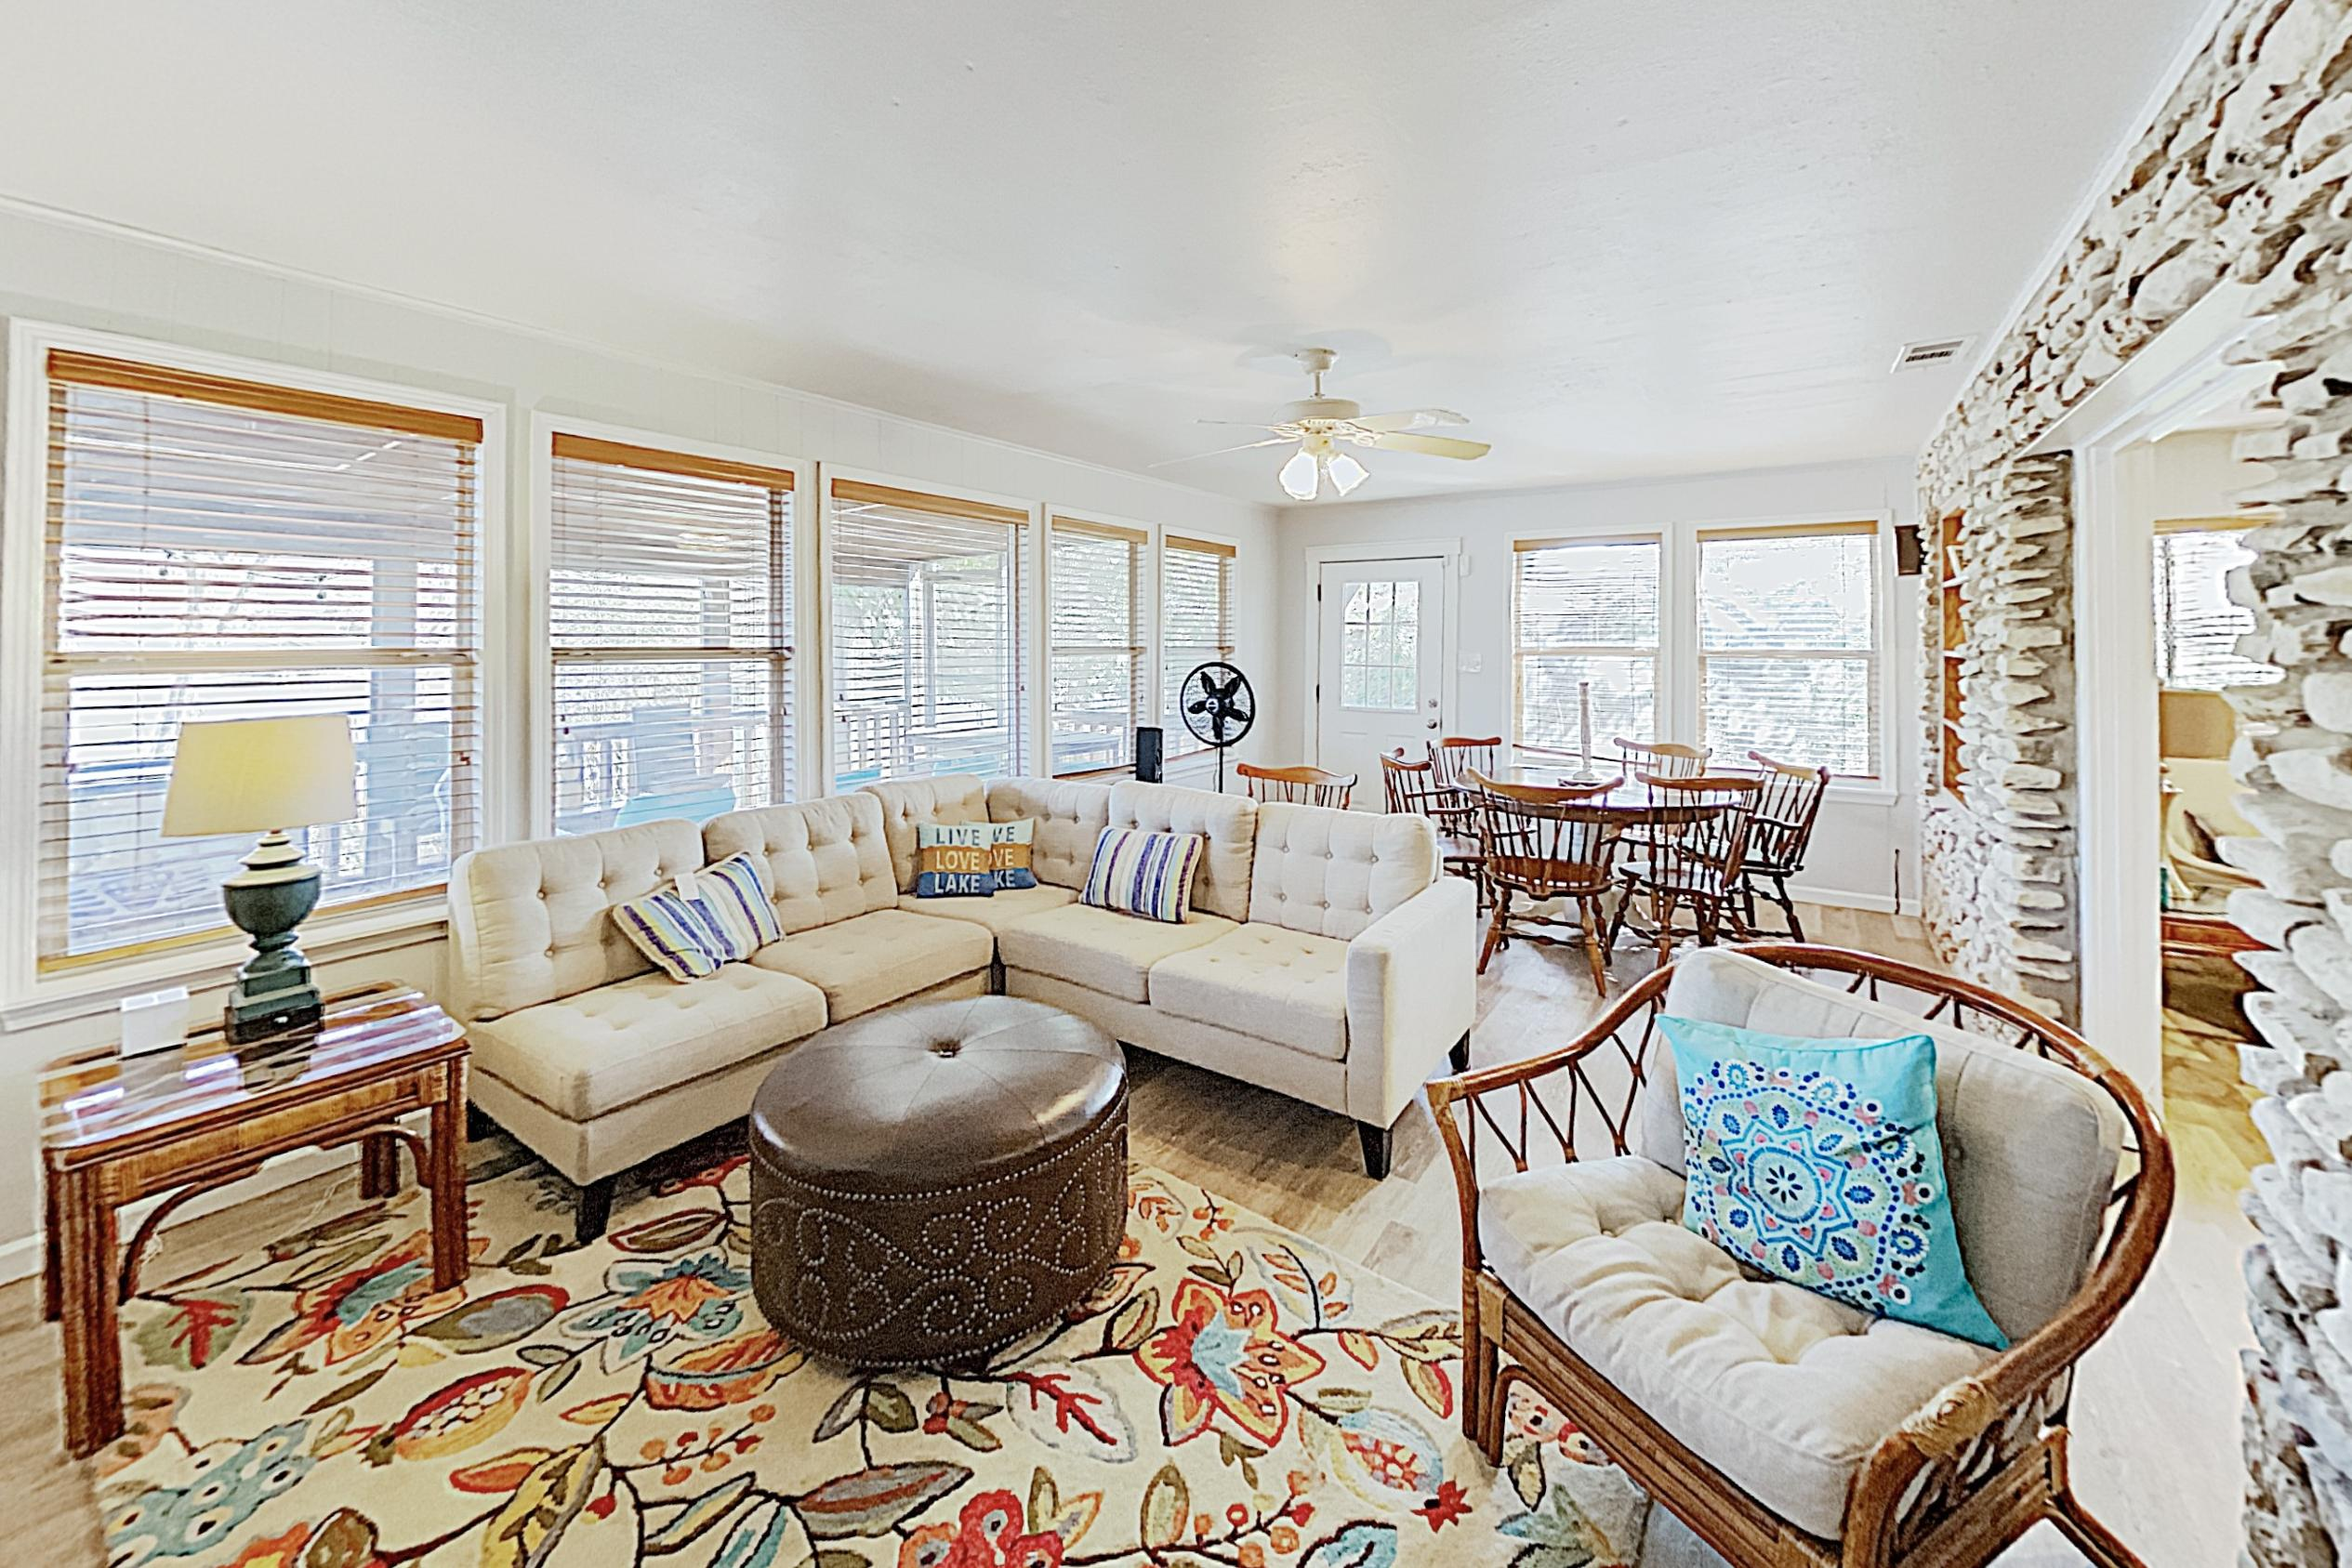 Welcome to Kingsland! This oasis on Lake LBJ is professionally managed by TurnKey Vacation Rentals.